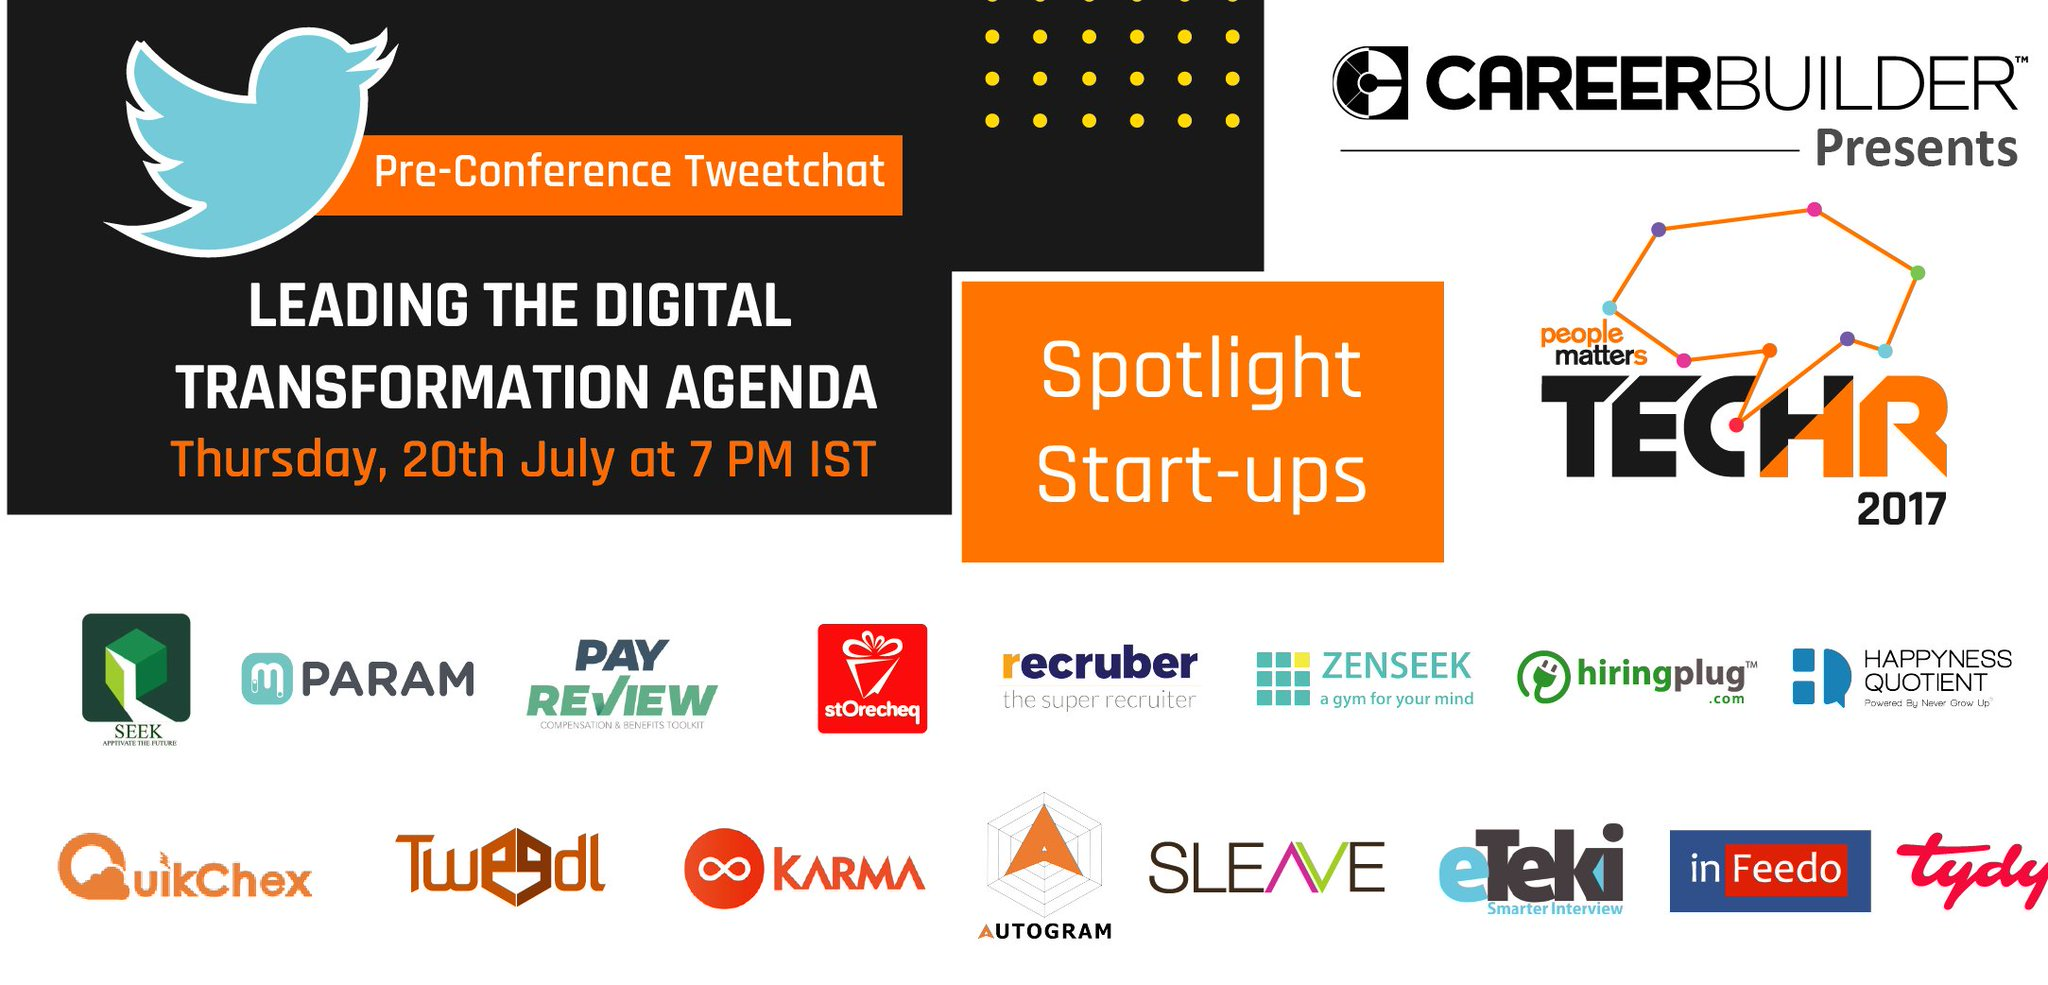 Thumbnail for TechHR 2017 Pre-conference Tweetchat